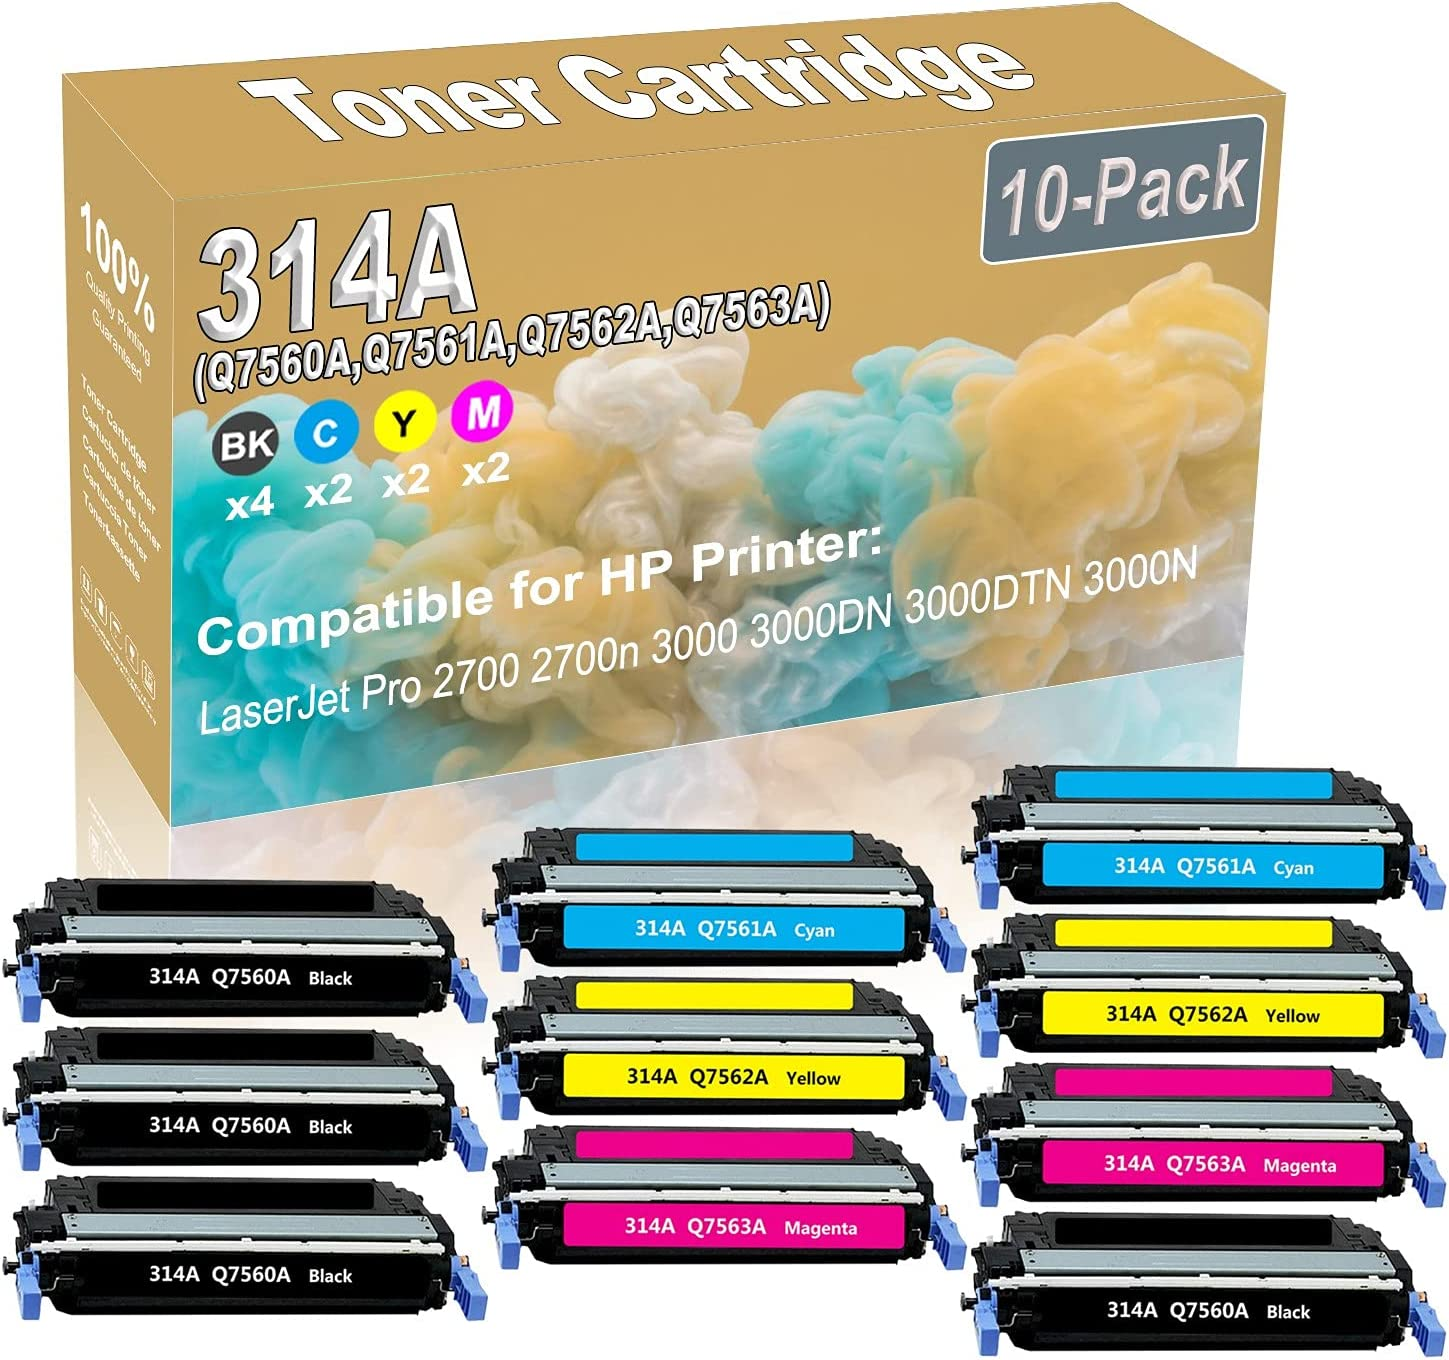 10-Pack (4BK+2C+2Y+2M) Compatible 2700 2700n 3000 Laser Printer Toner Cartridge (High Capacity) Replacement for HP 314A (Q7560A Q7561A Q7562A Q7563A) Printer Toner Cartridge